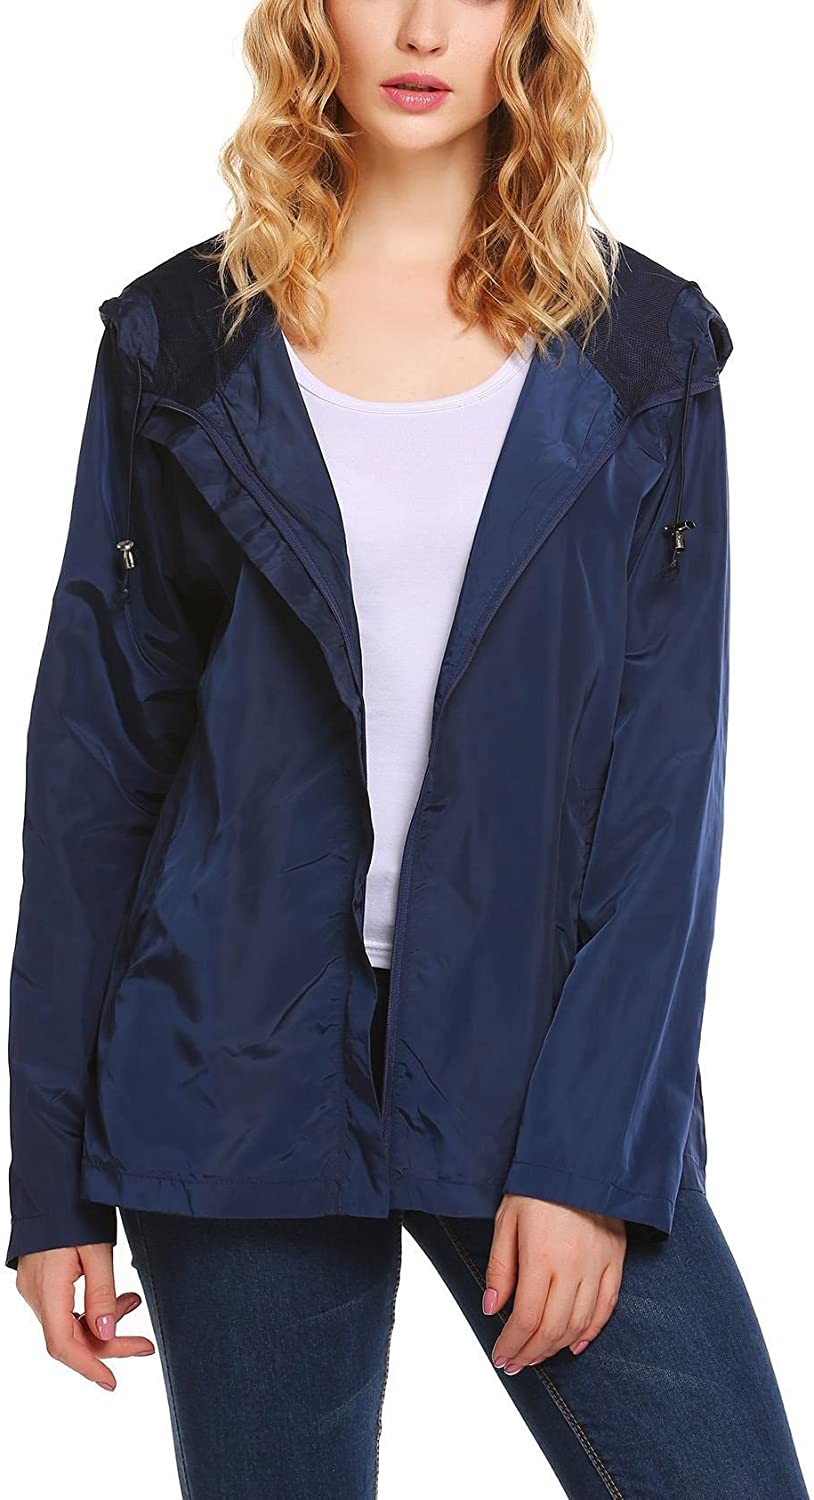 Bifast Women's Casual Lightweight Fully Lined Classic Anorak Active Outdoor Hooded Jacket